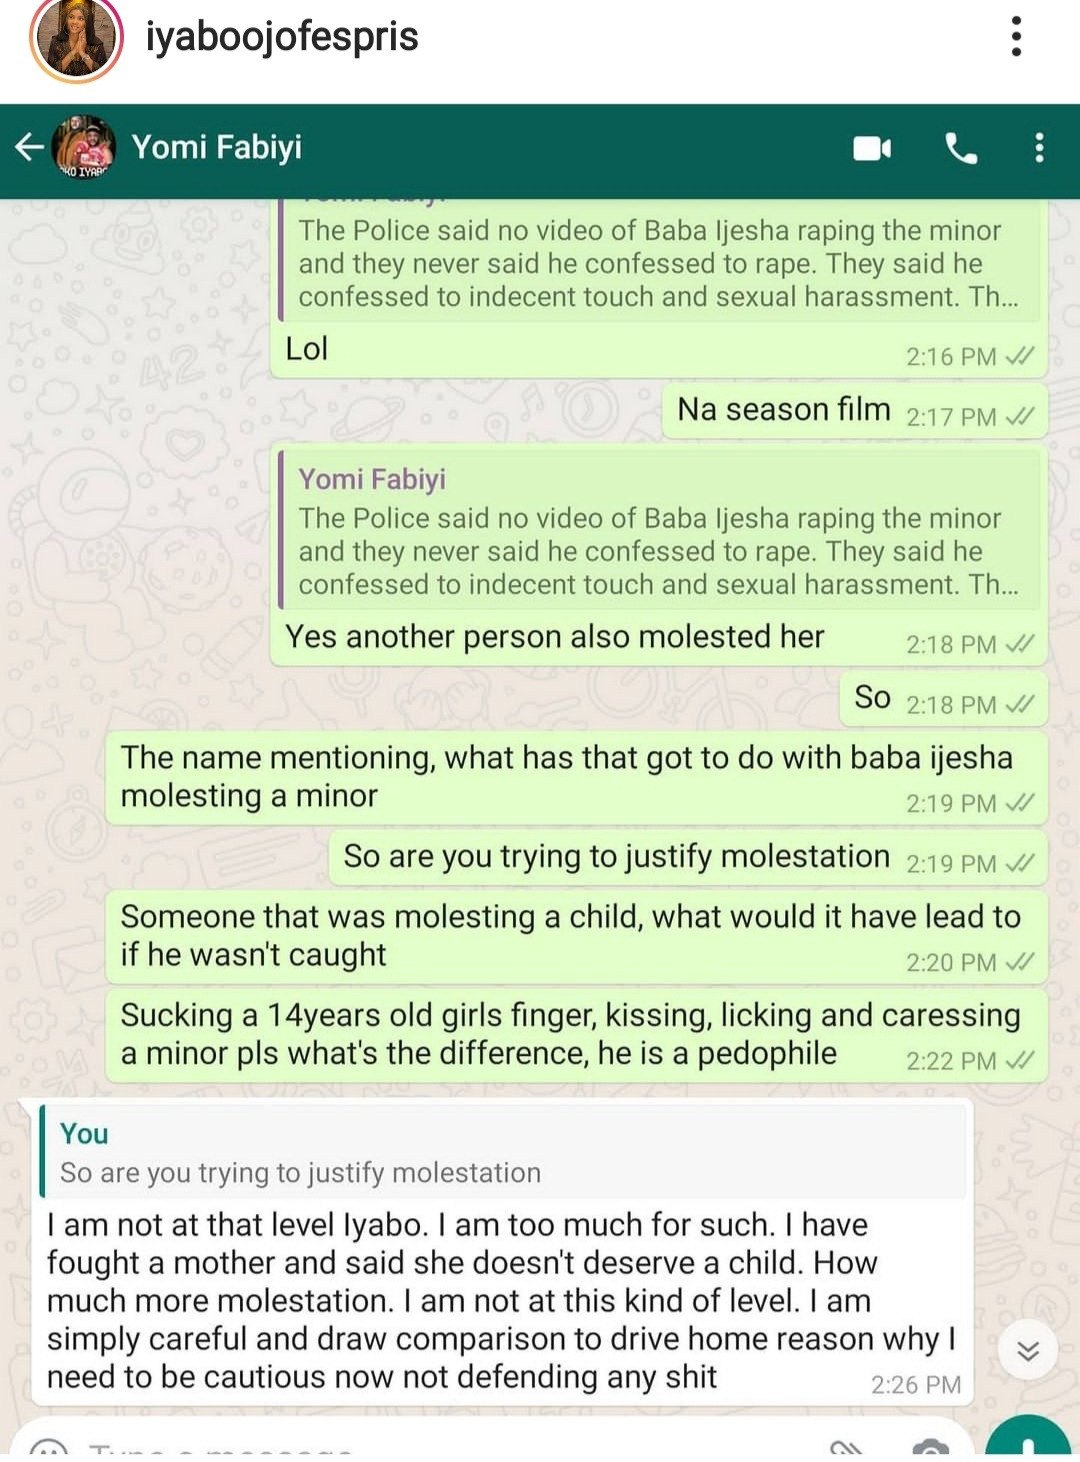 Iyabo Ojo releases her full chat with Yomi Fabiyi